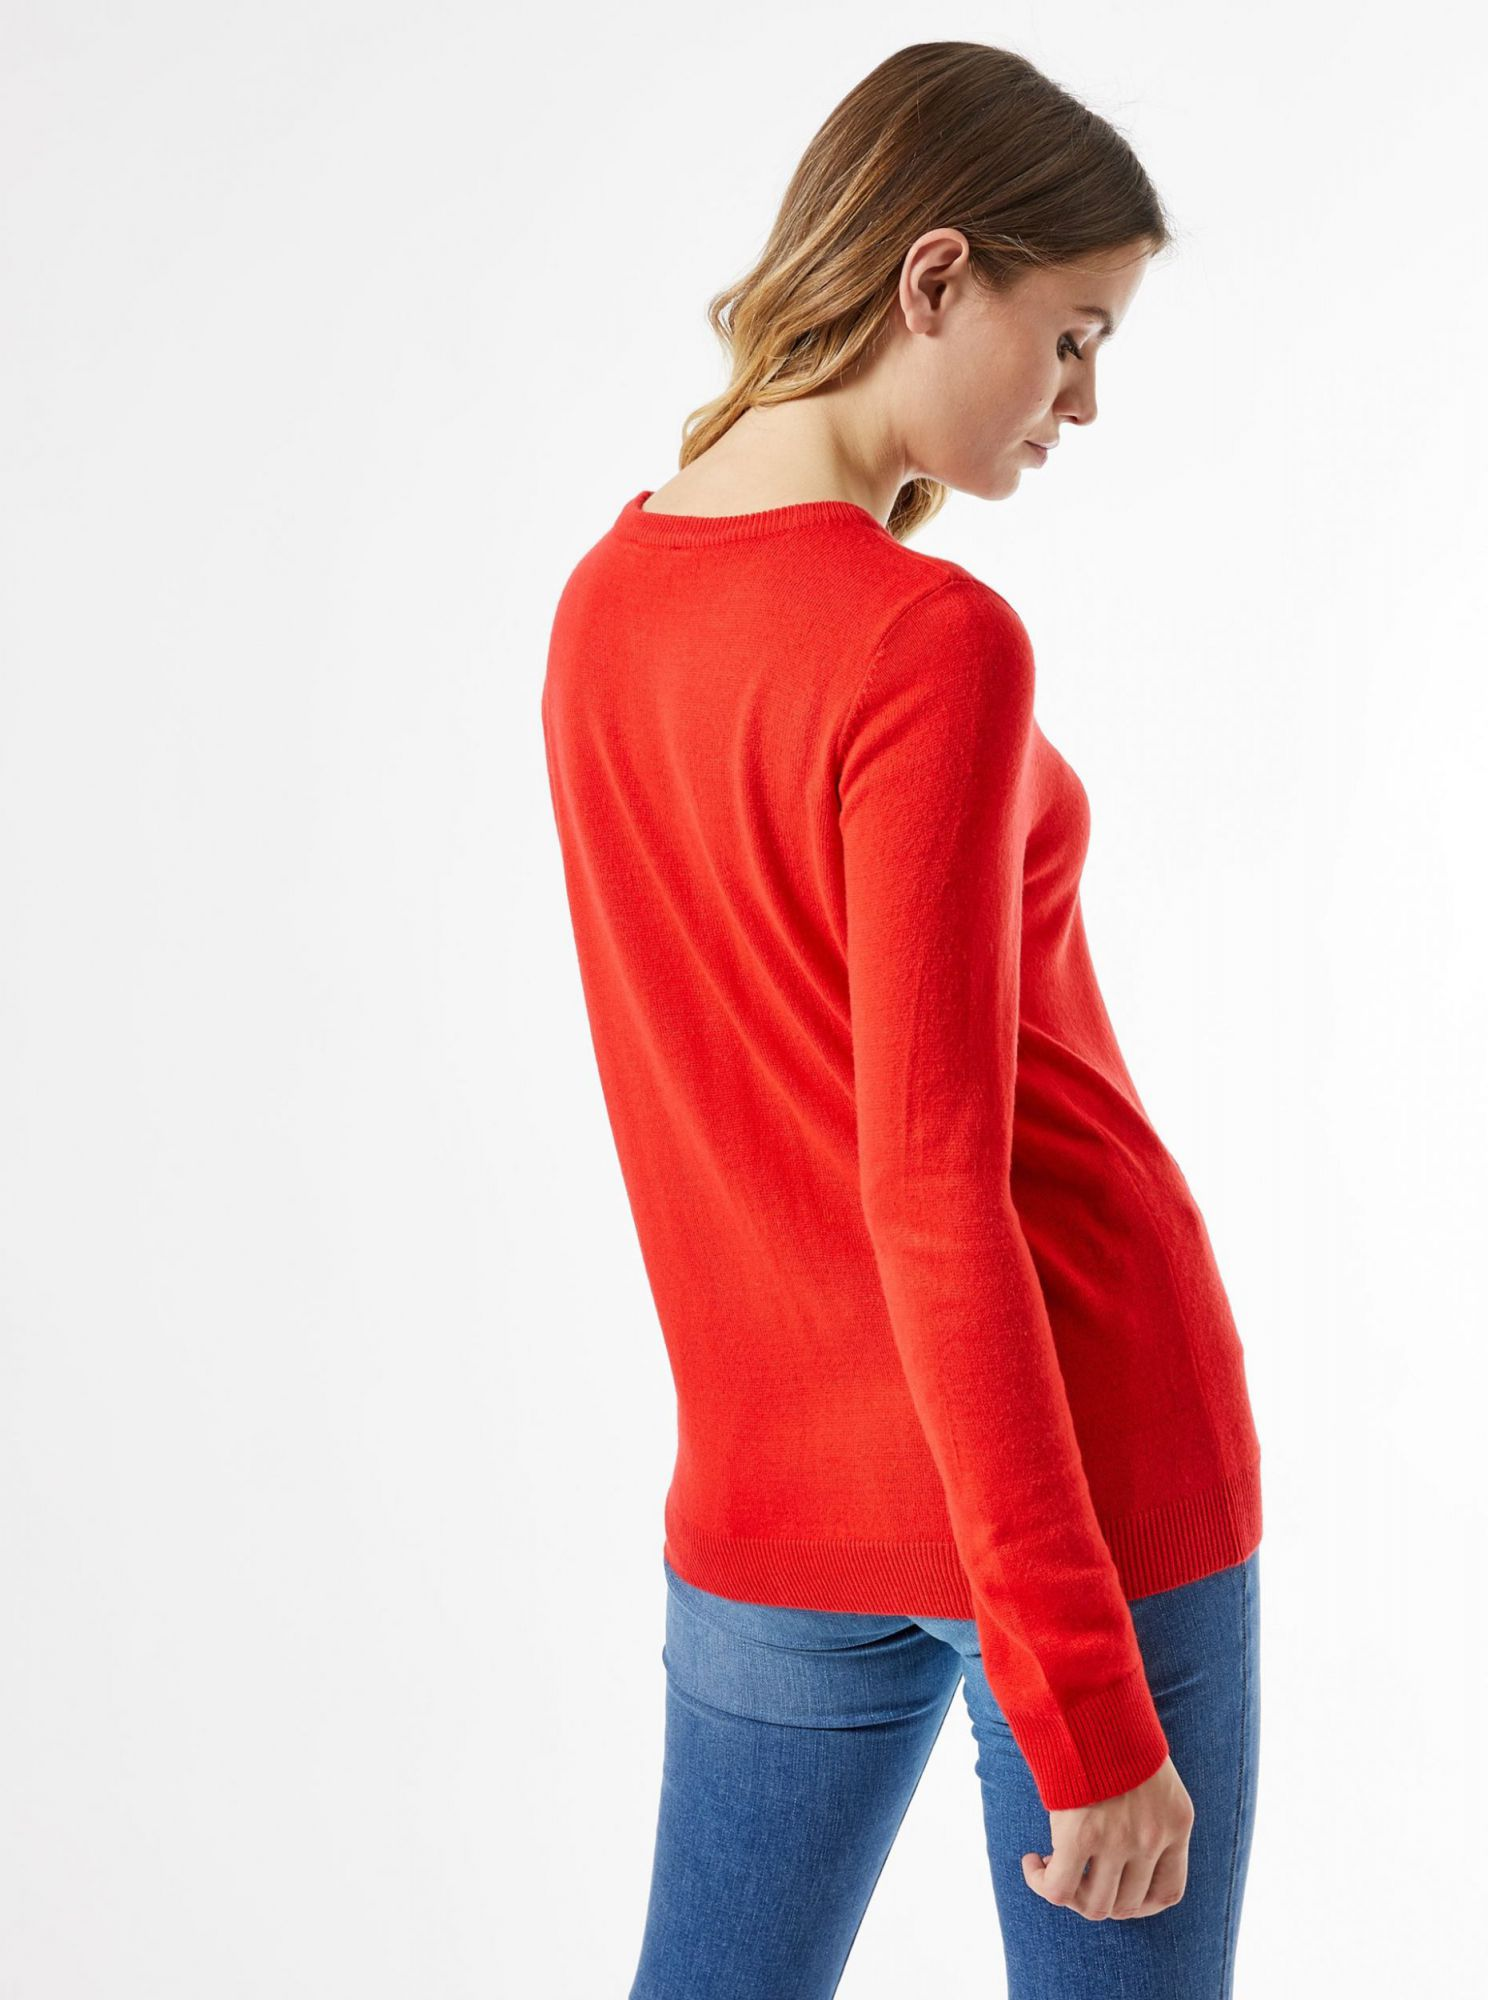 Dorothy Perkins red patterned sweater